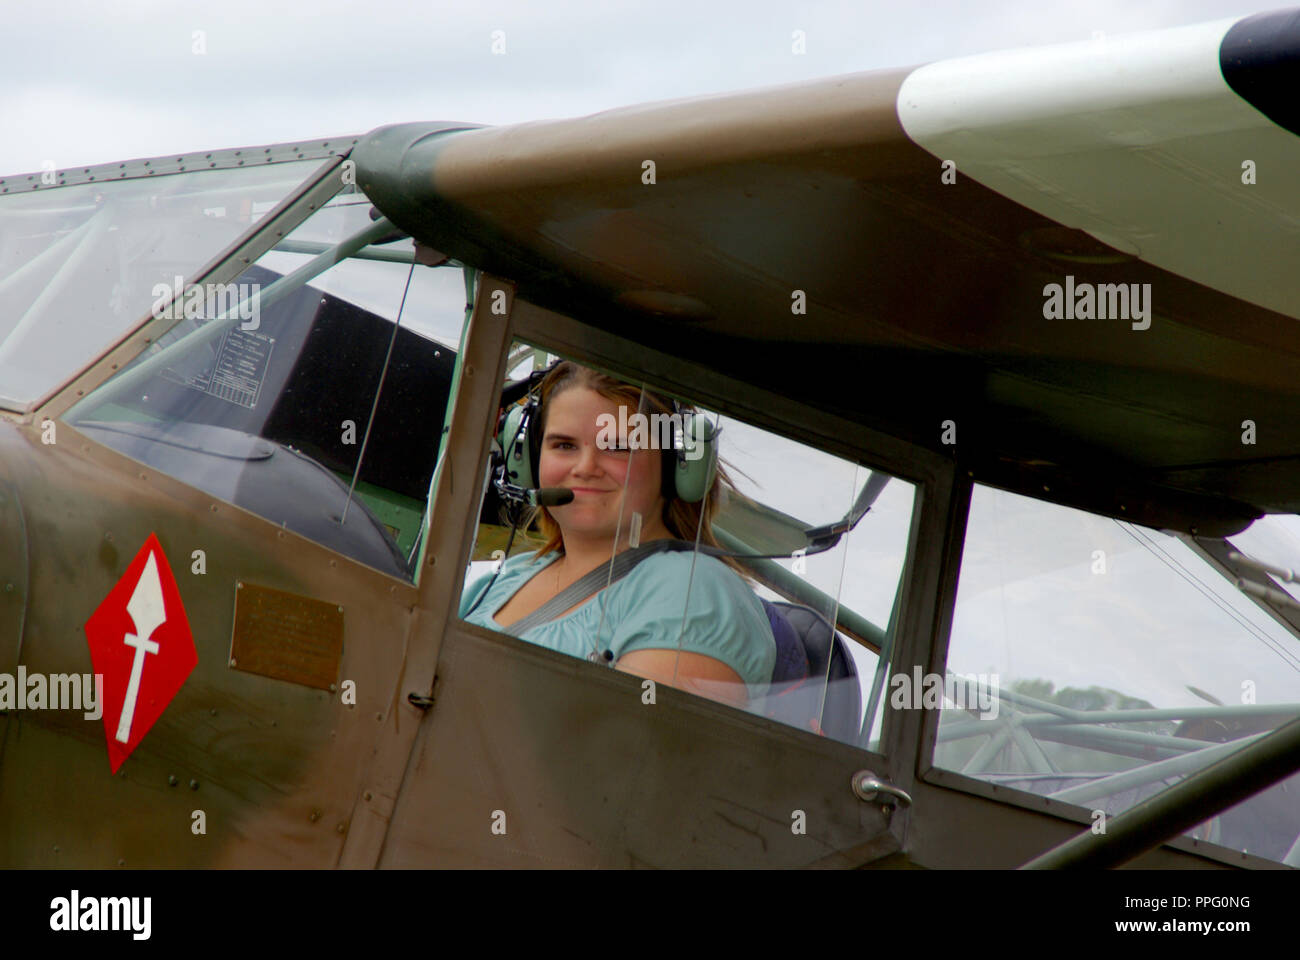 Leah Hammond at the controls of her plane Taylorcraft Aeroplanes Auster V G-AMVD. Female pilot. Married name Leah Young - Stock Image